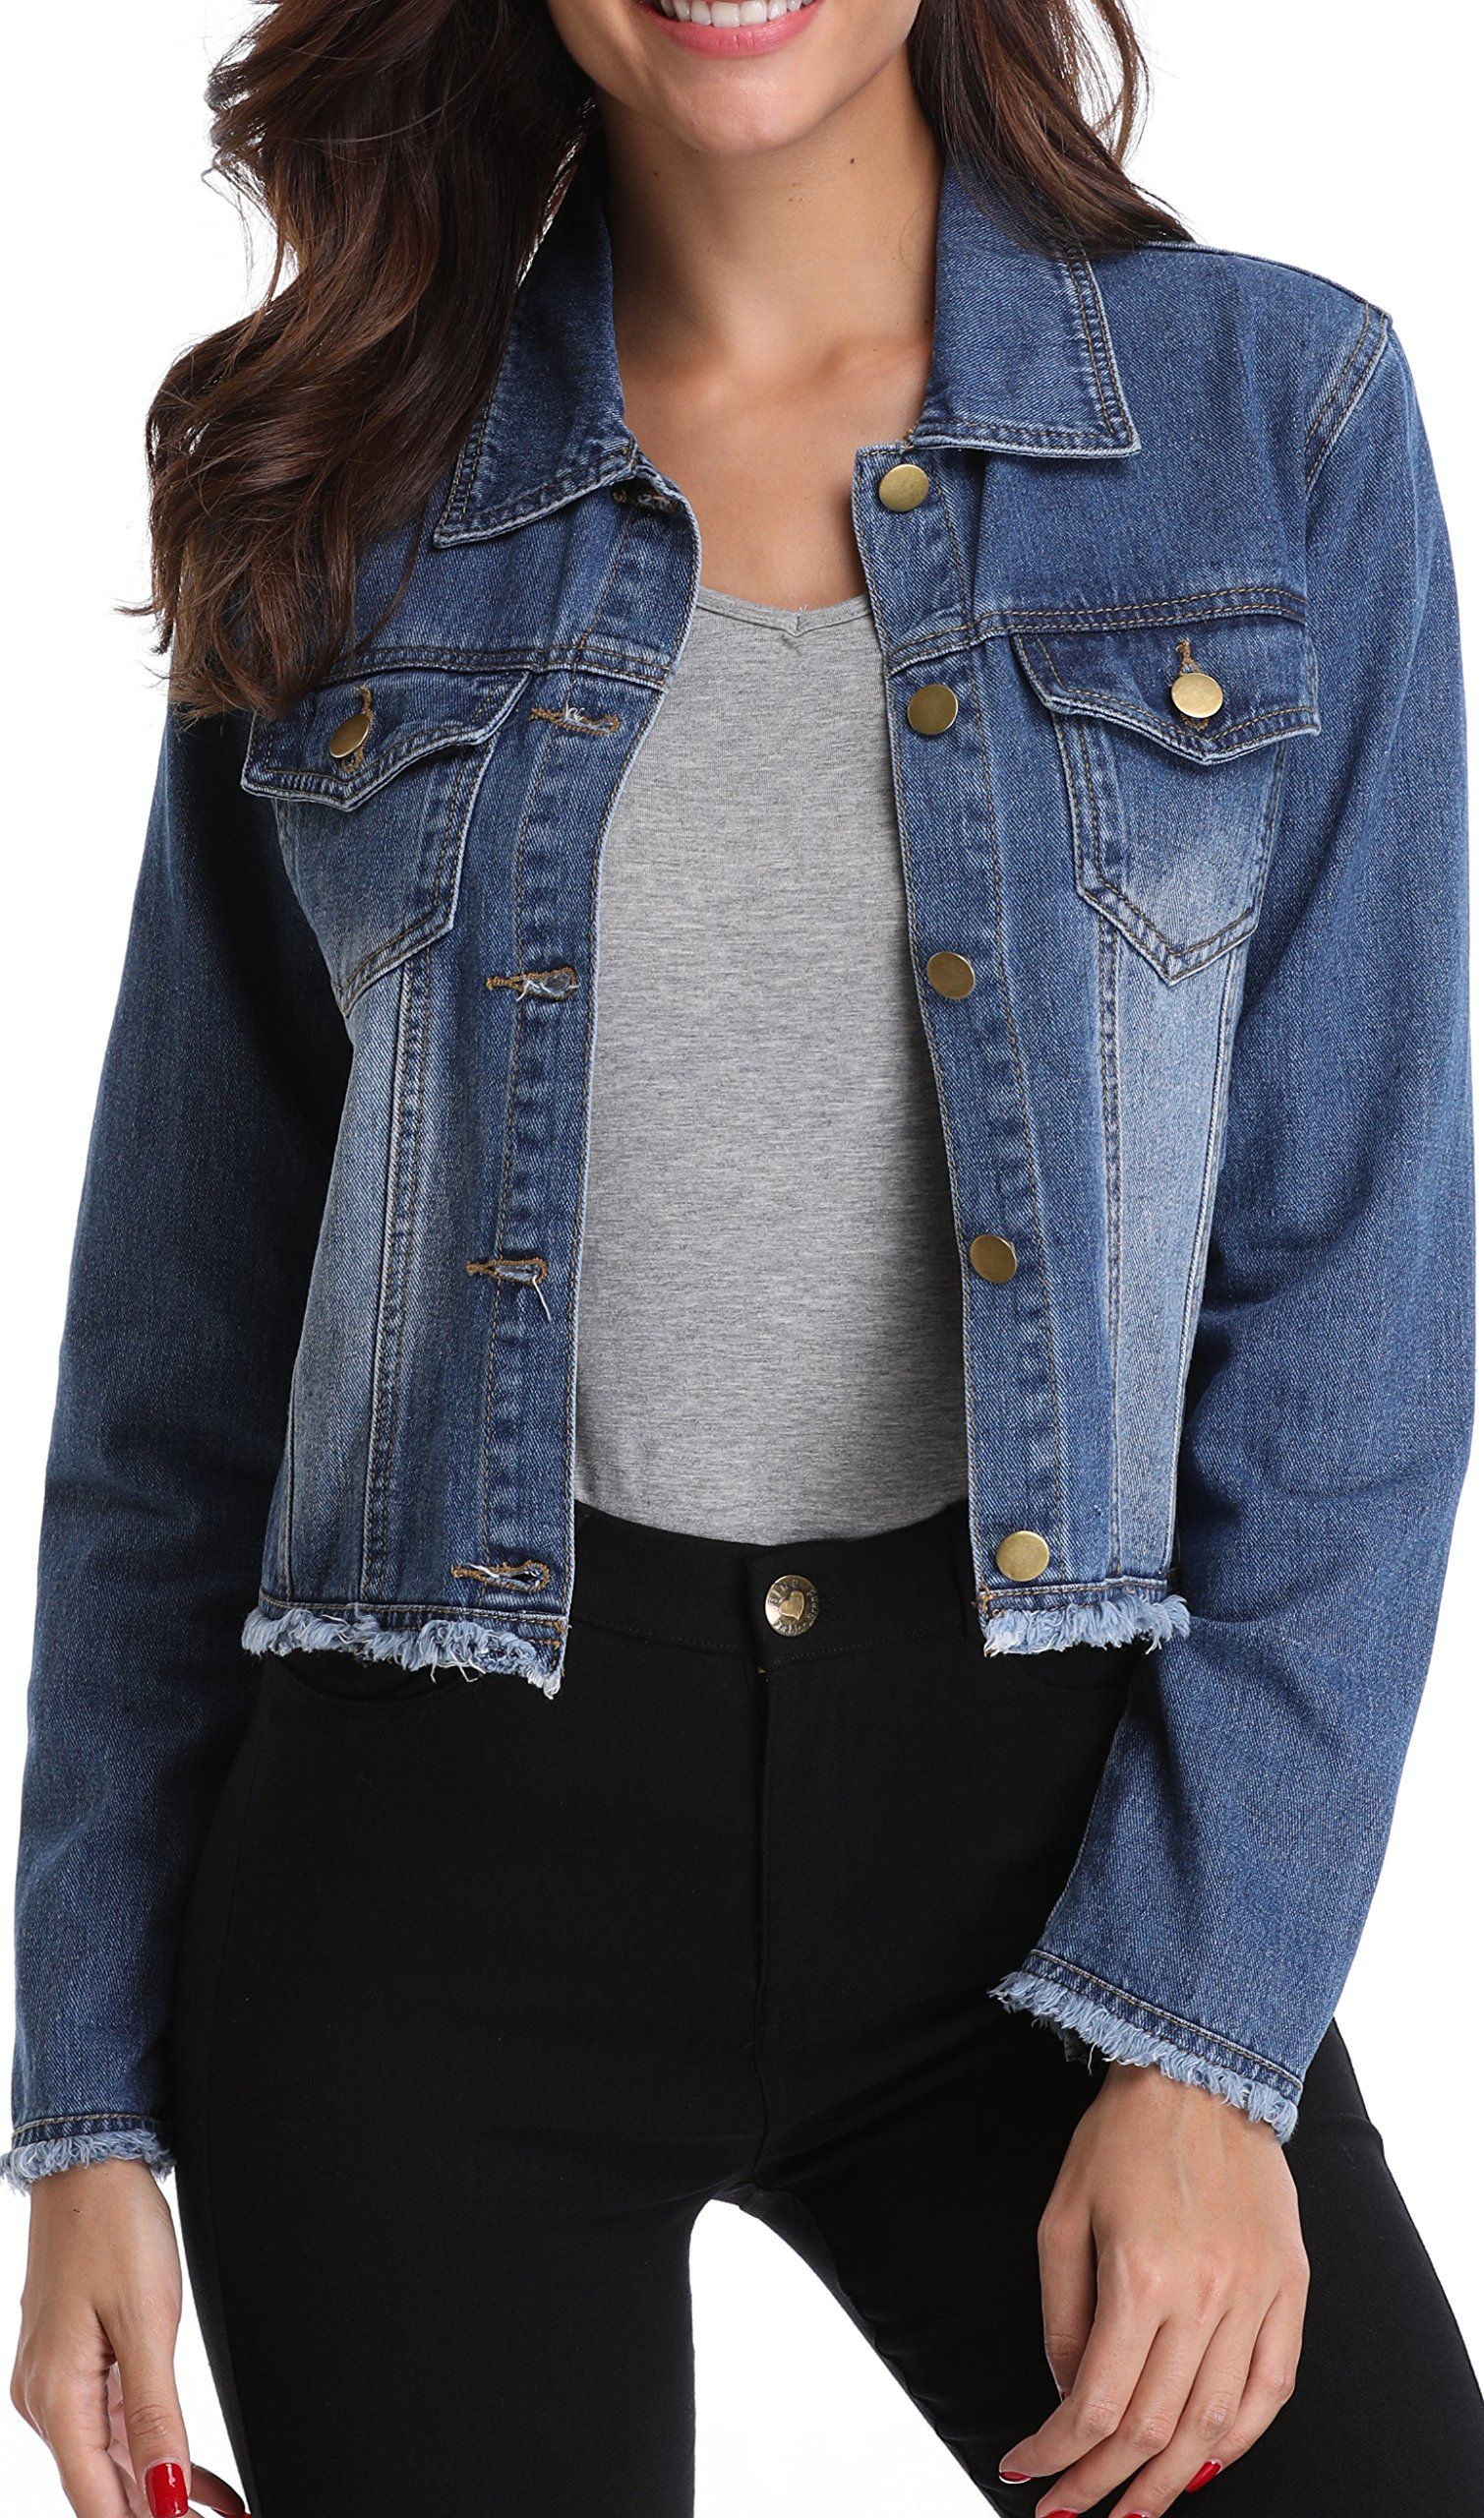 deb6a28b2bce32 MISS MOLY Jean Jacket Women s Frayed Washed Button Up Cropped Denim ...